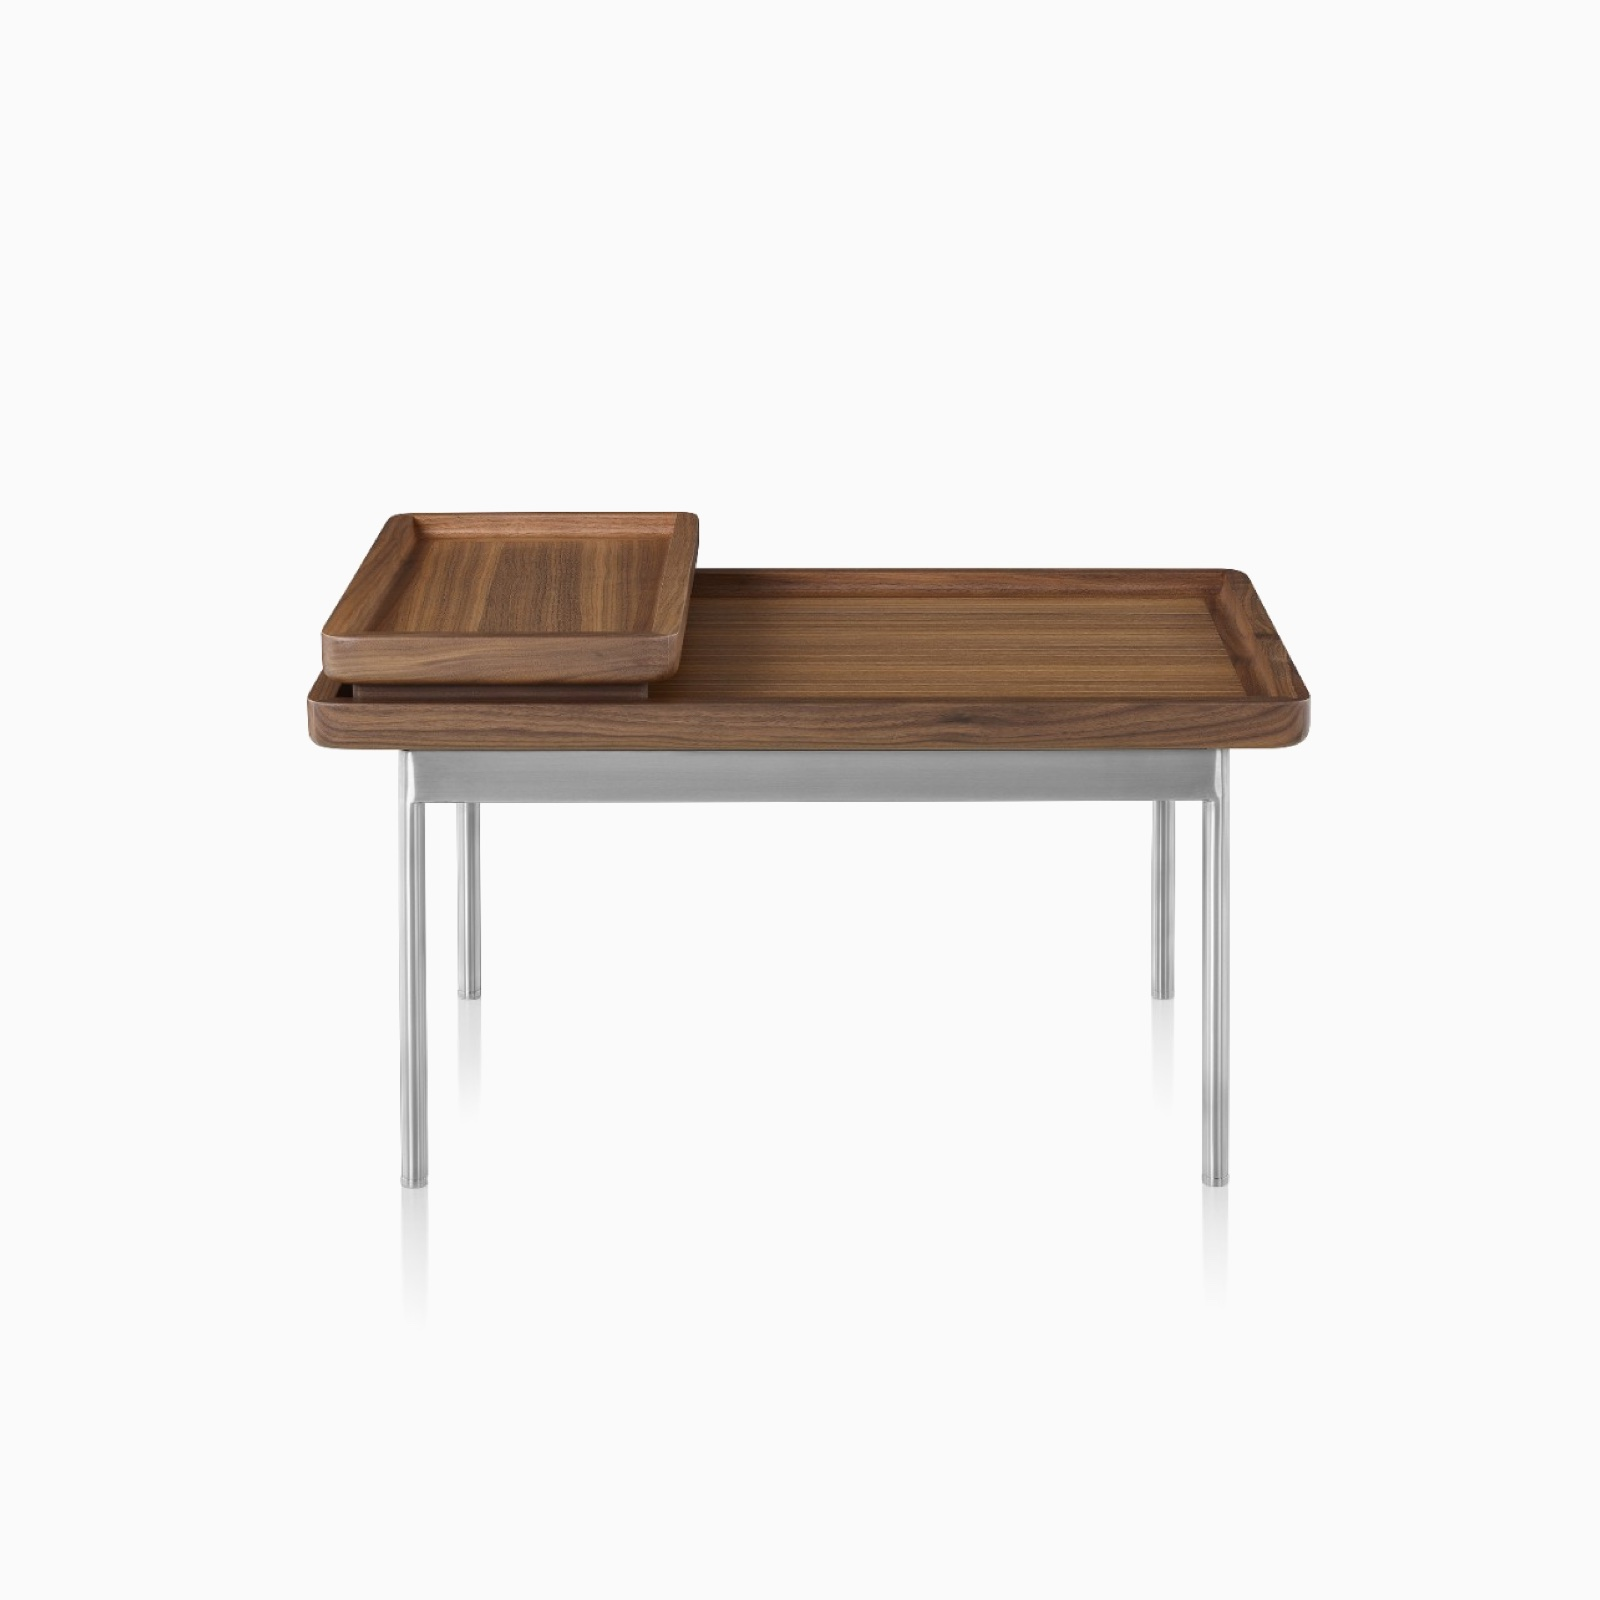 A Tuxedo Component Lounge Table featuring a Natural Walnut top and Satin Chrome Base.